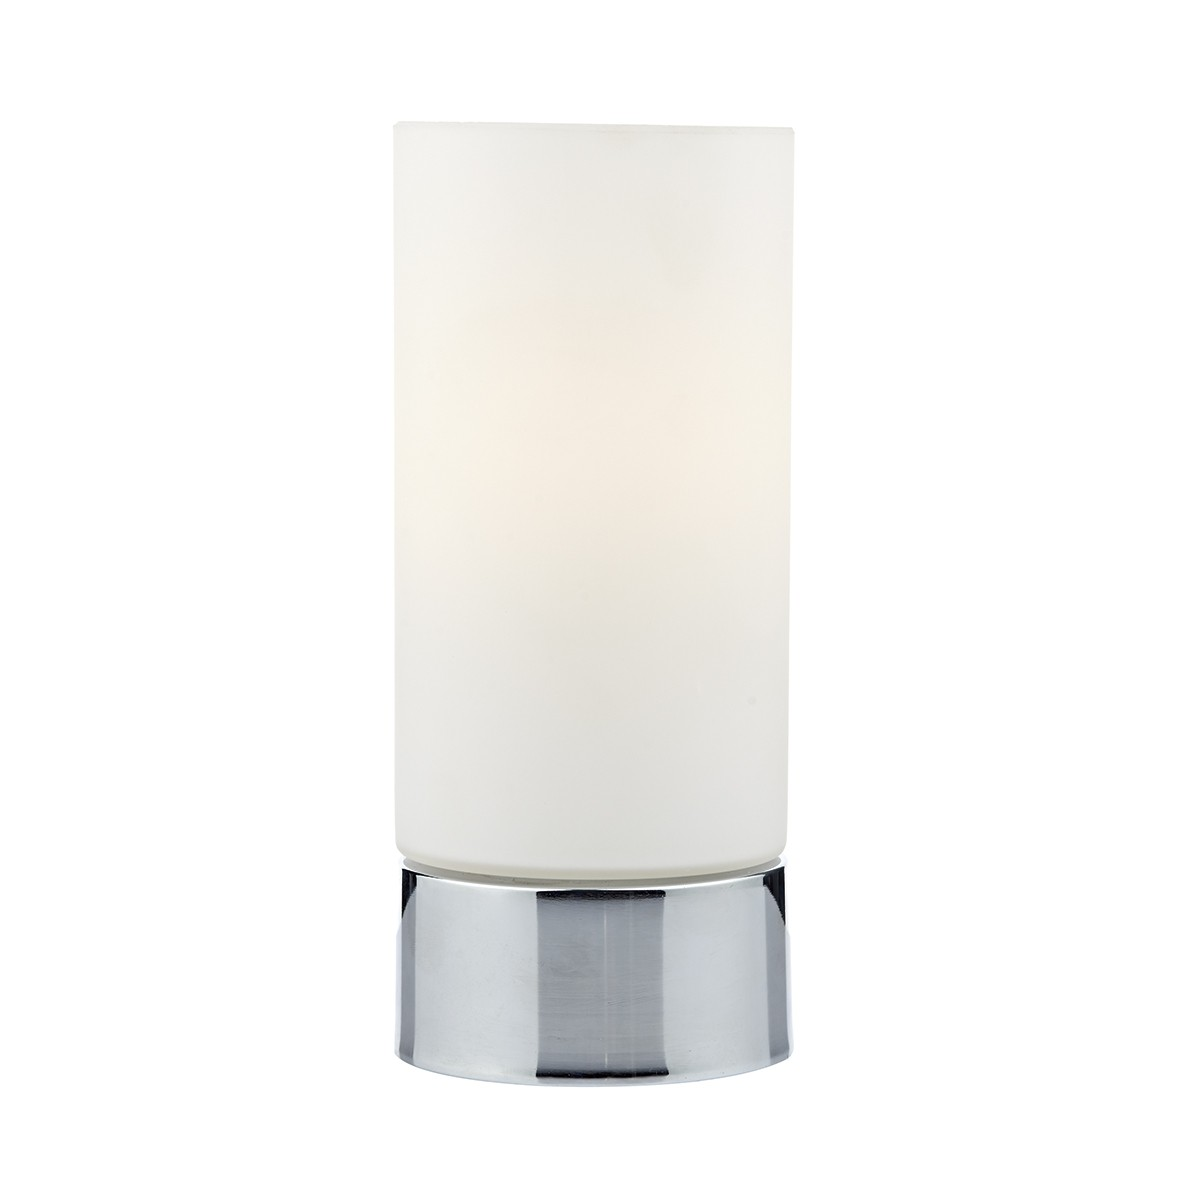 Jot Touch Table Lamp Polished Chrome Complete With Glass Shade from Franks Complete House Furnishers